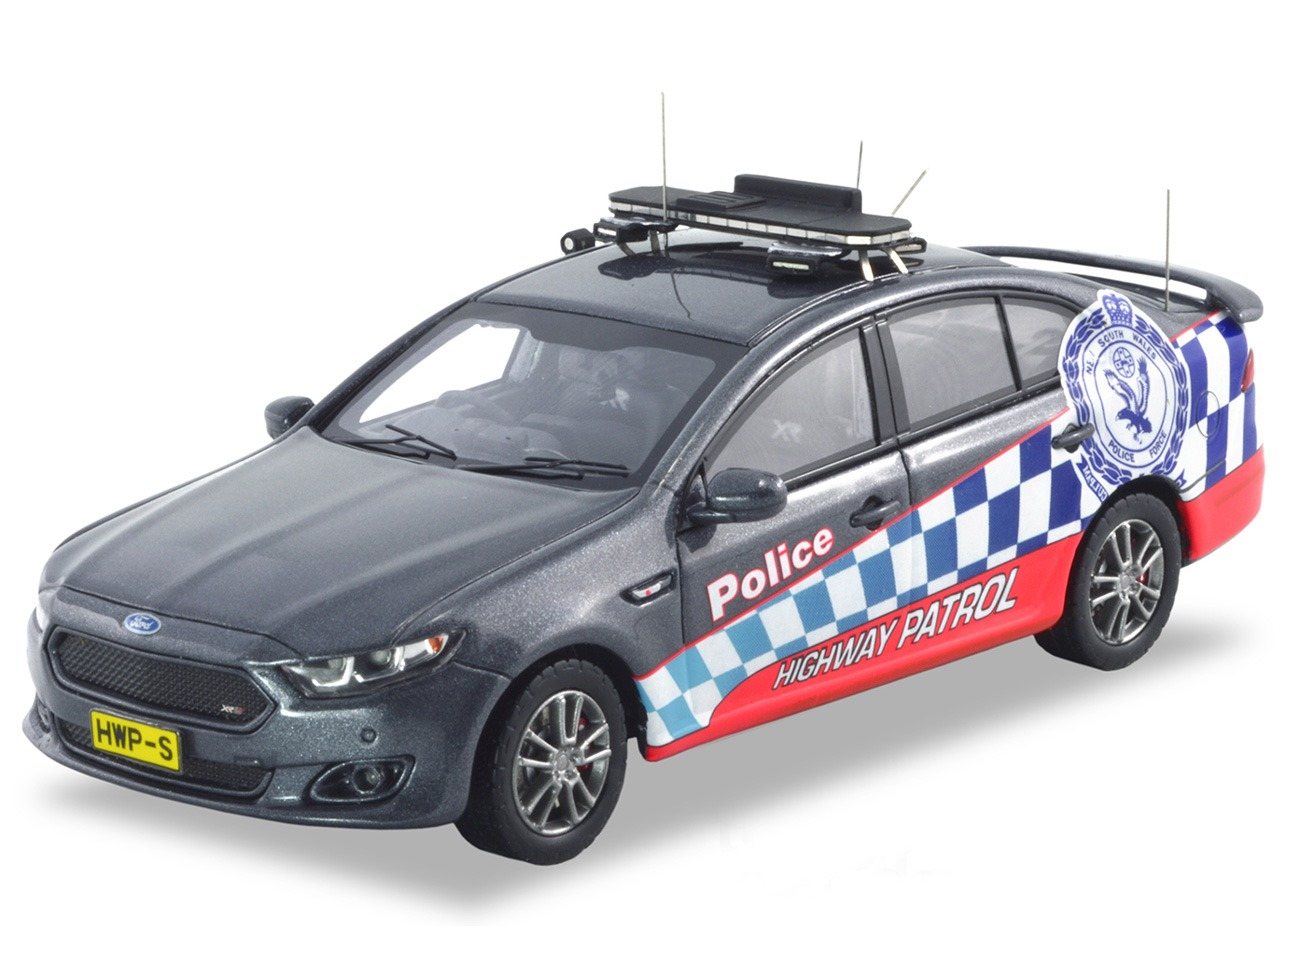 Ford FGX XR6 Highway Patrol – Grey